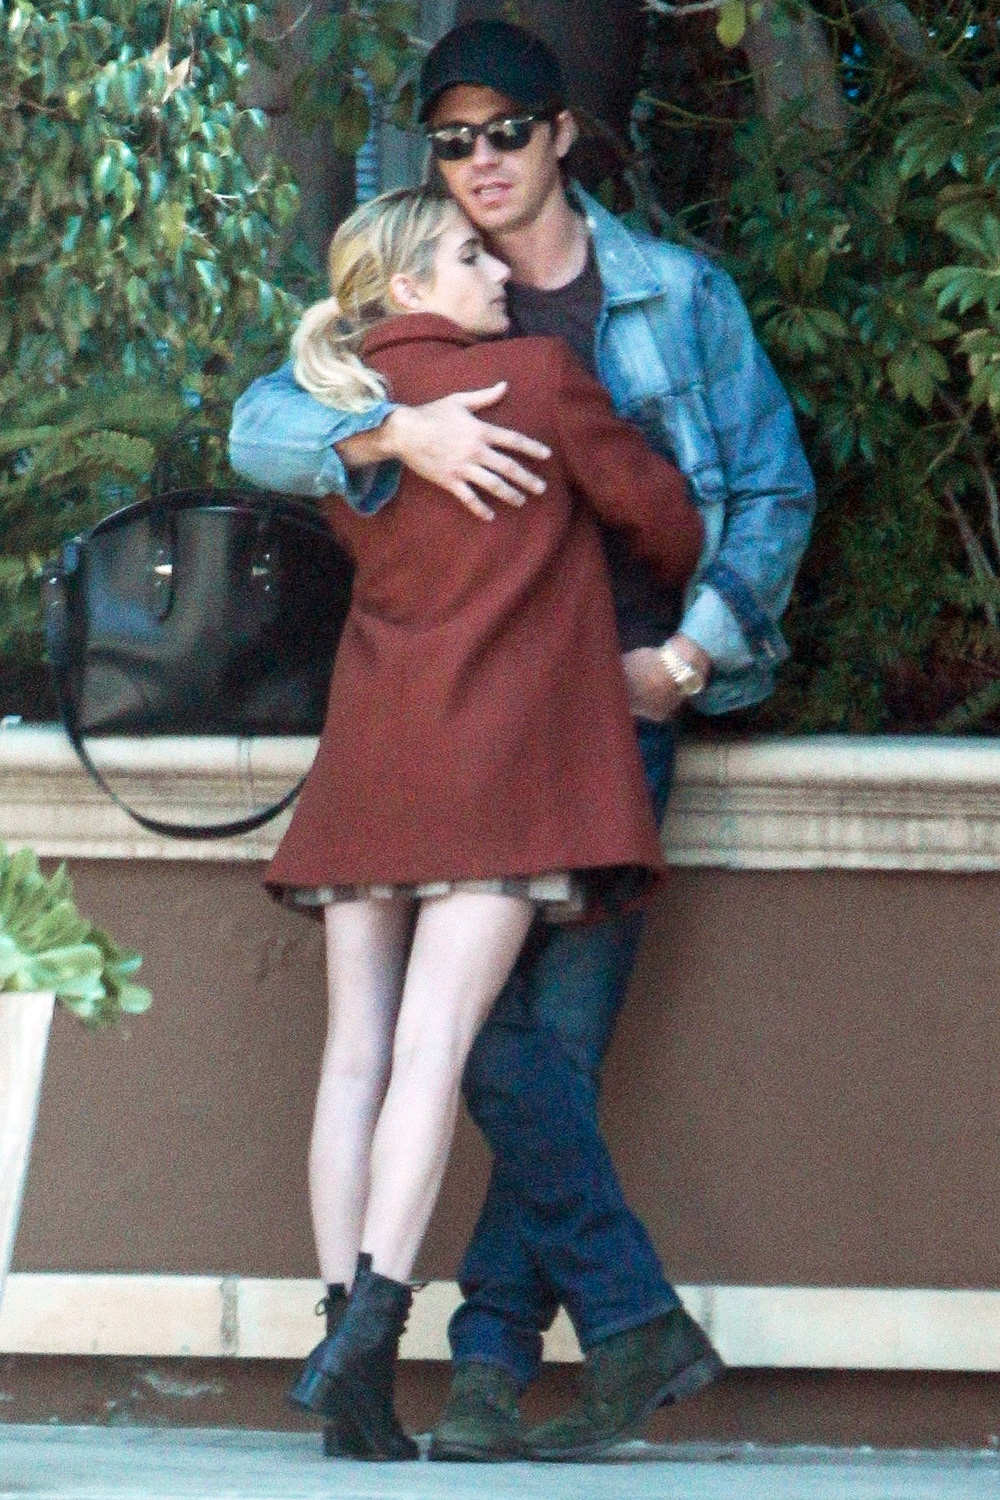 Emma Roberts and boyfriend Garrett Hedlund enjoys a smoke and share some PDA with our cameras after grabbing brunch at The Four Season Hotel